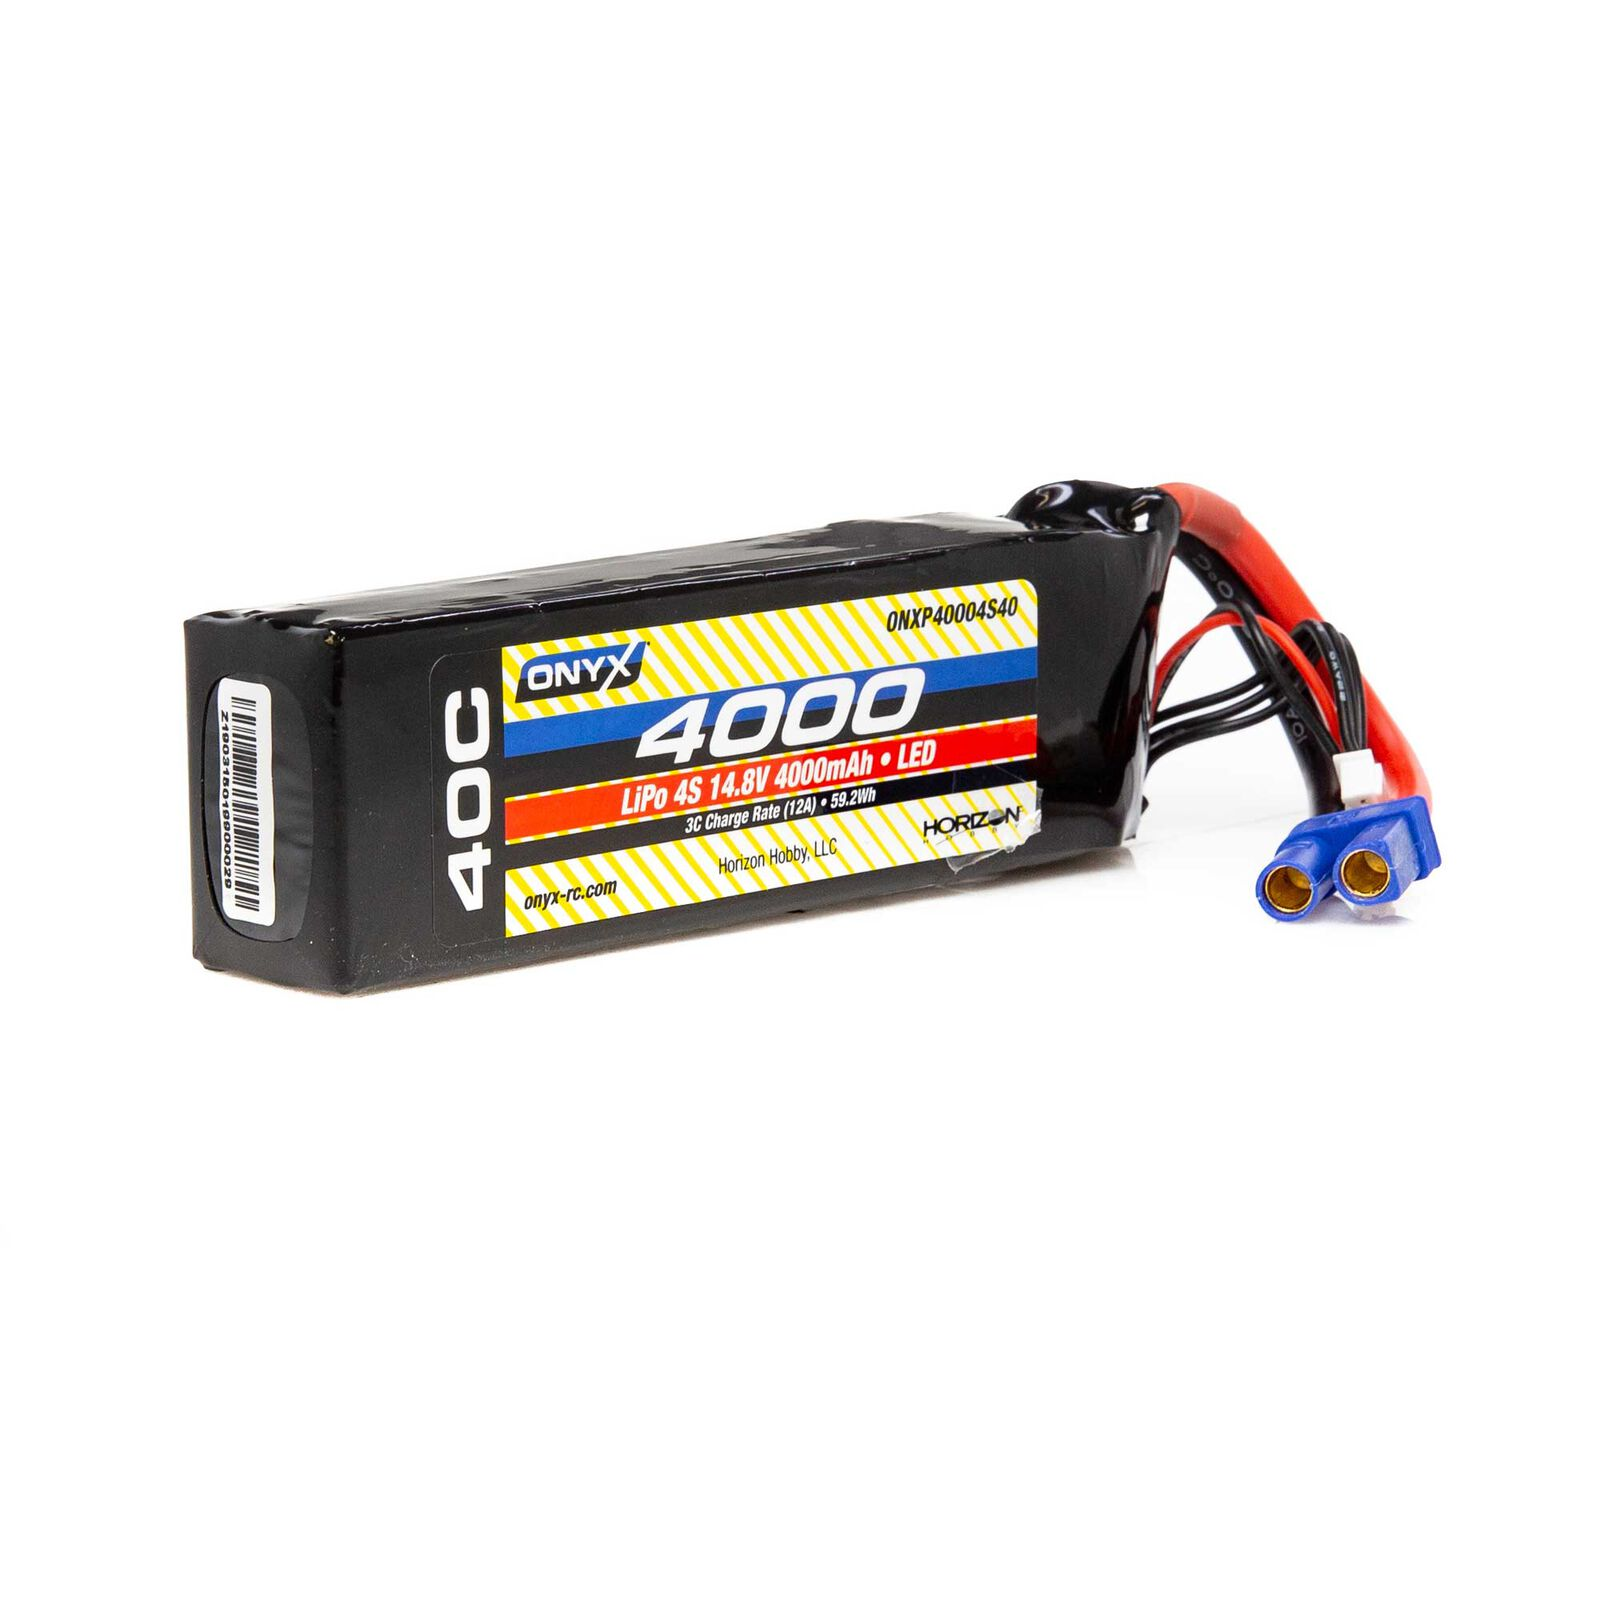 14.8V 4000mAh 4S 40C LiPo Battery: EC5